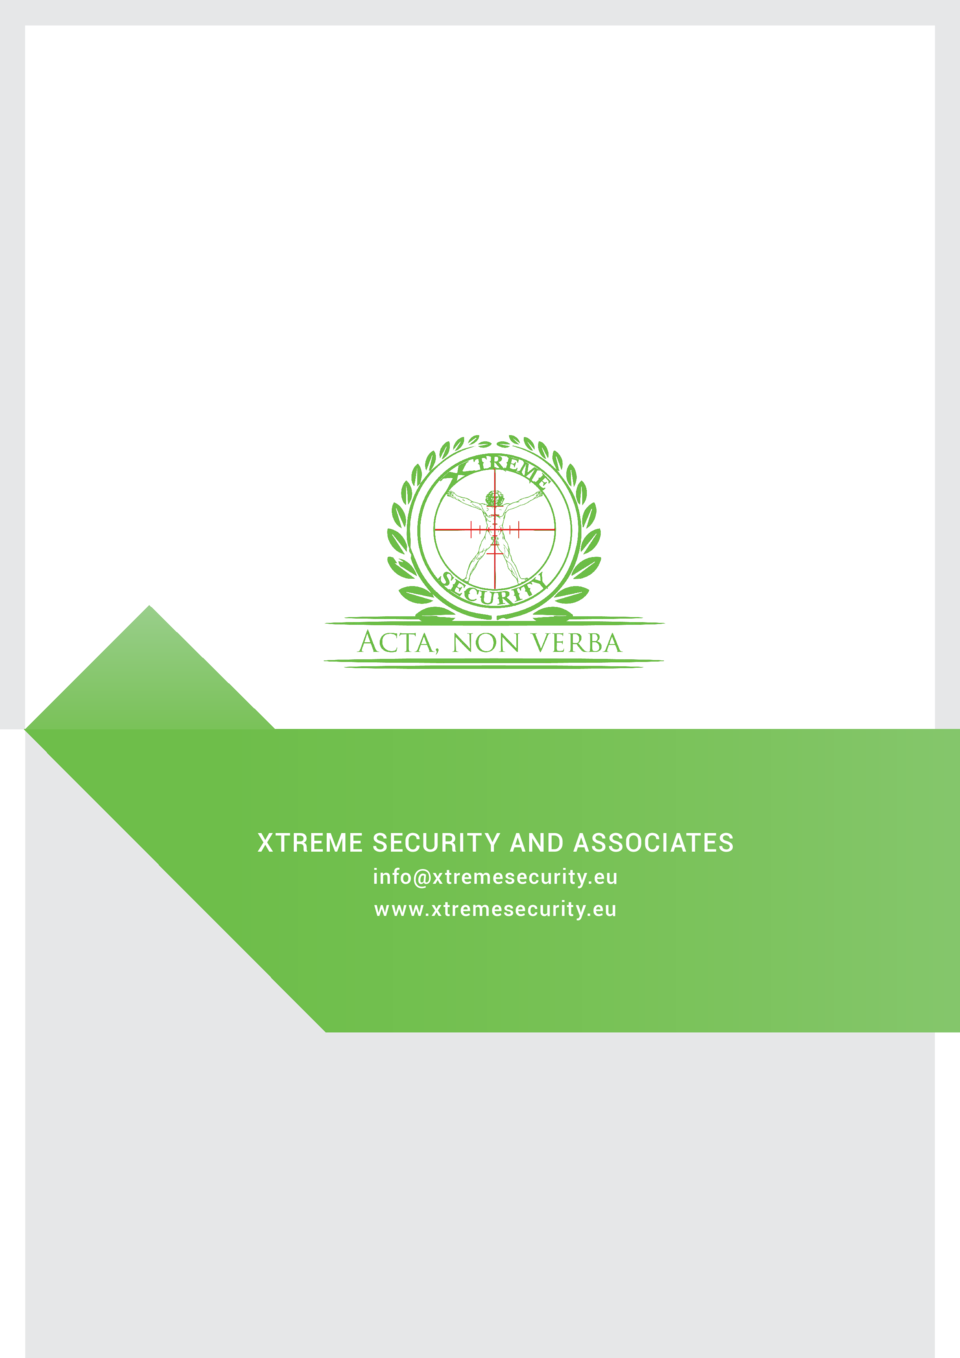 XTREME SECURITY AND ASSOCIATES info xtremesecurity.eu www.xtremesecurity.eu